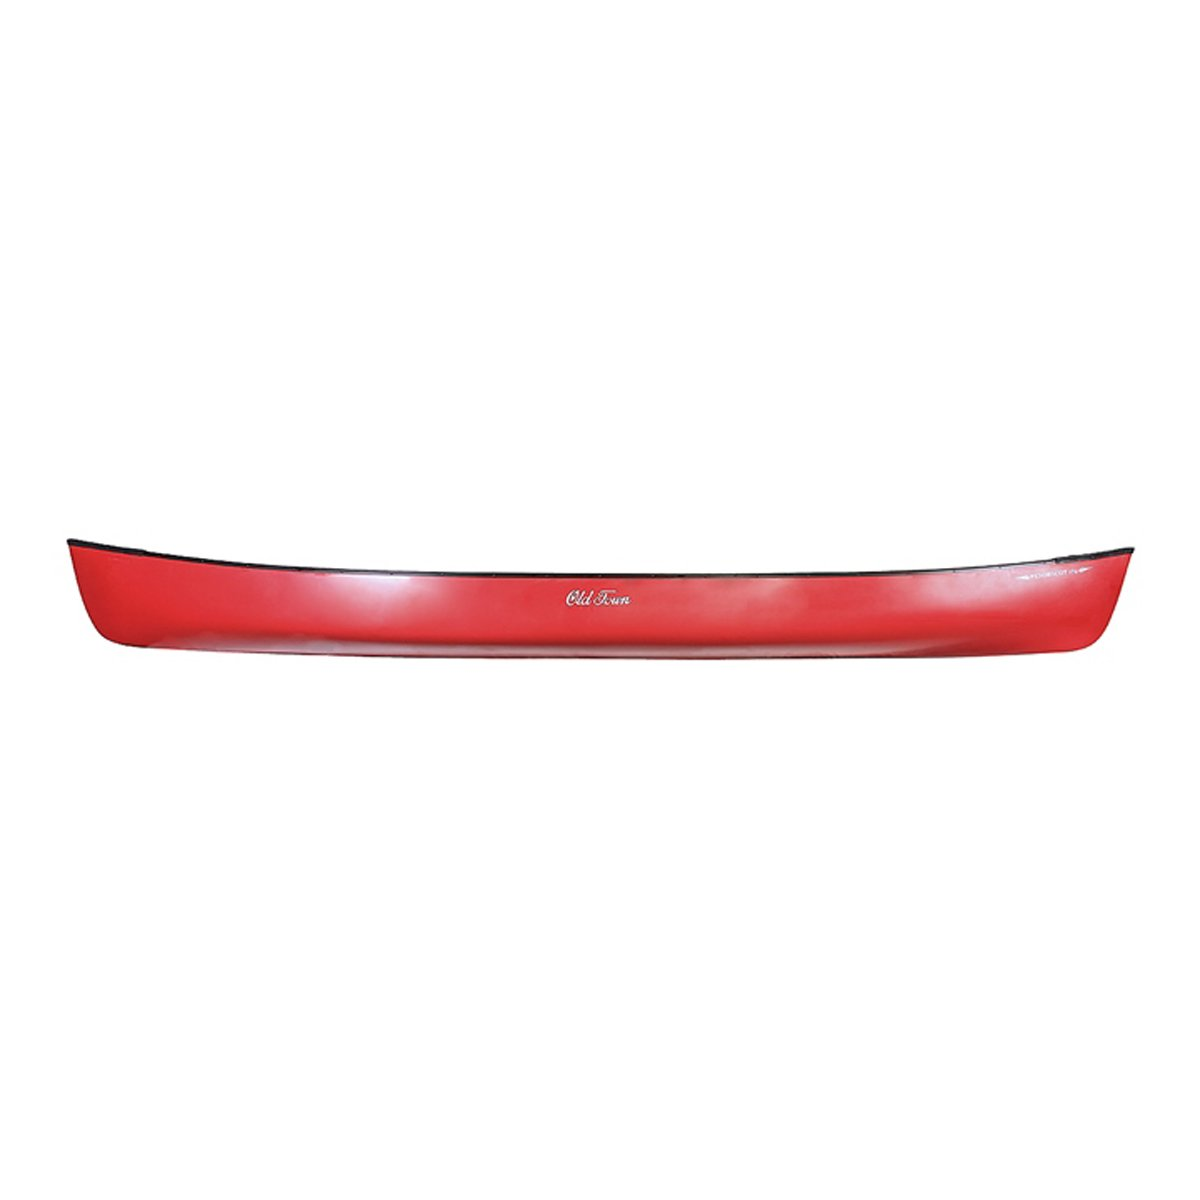 Old Town Penobscot 174 Canoe - Red